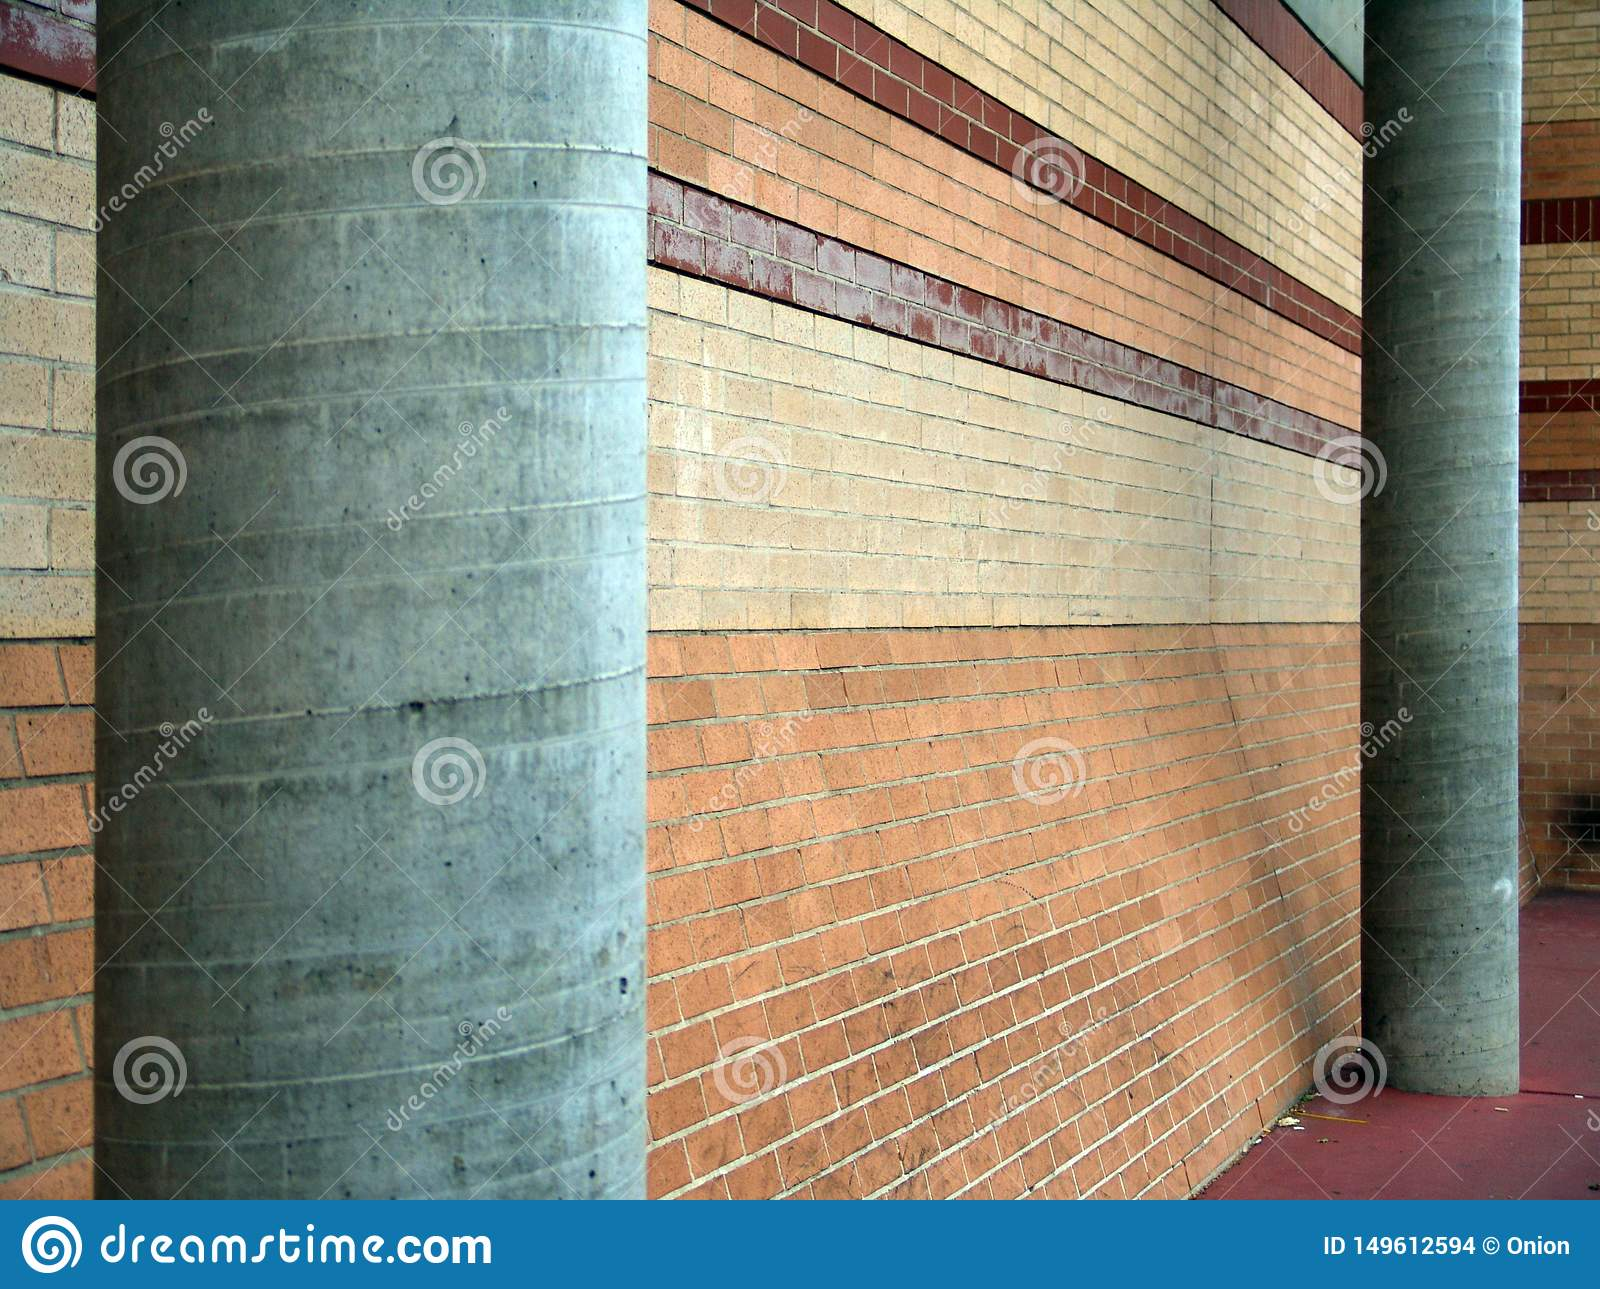 Two support pillars in grey next to a brick wall